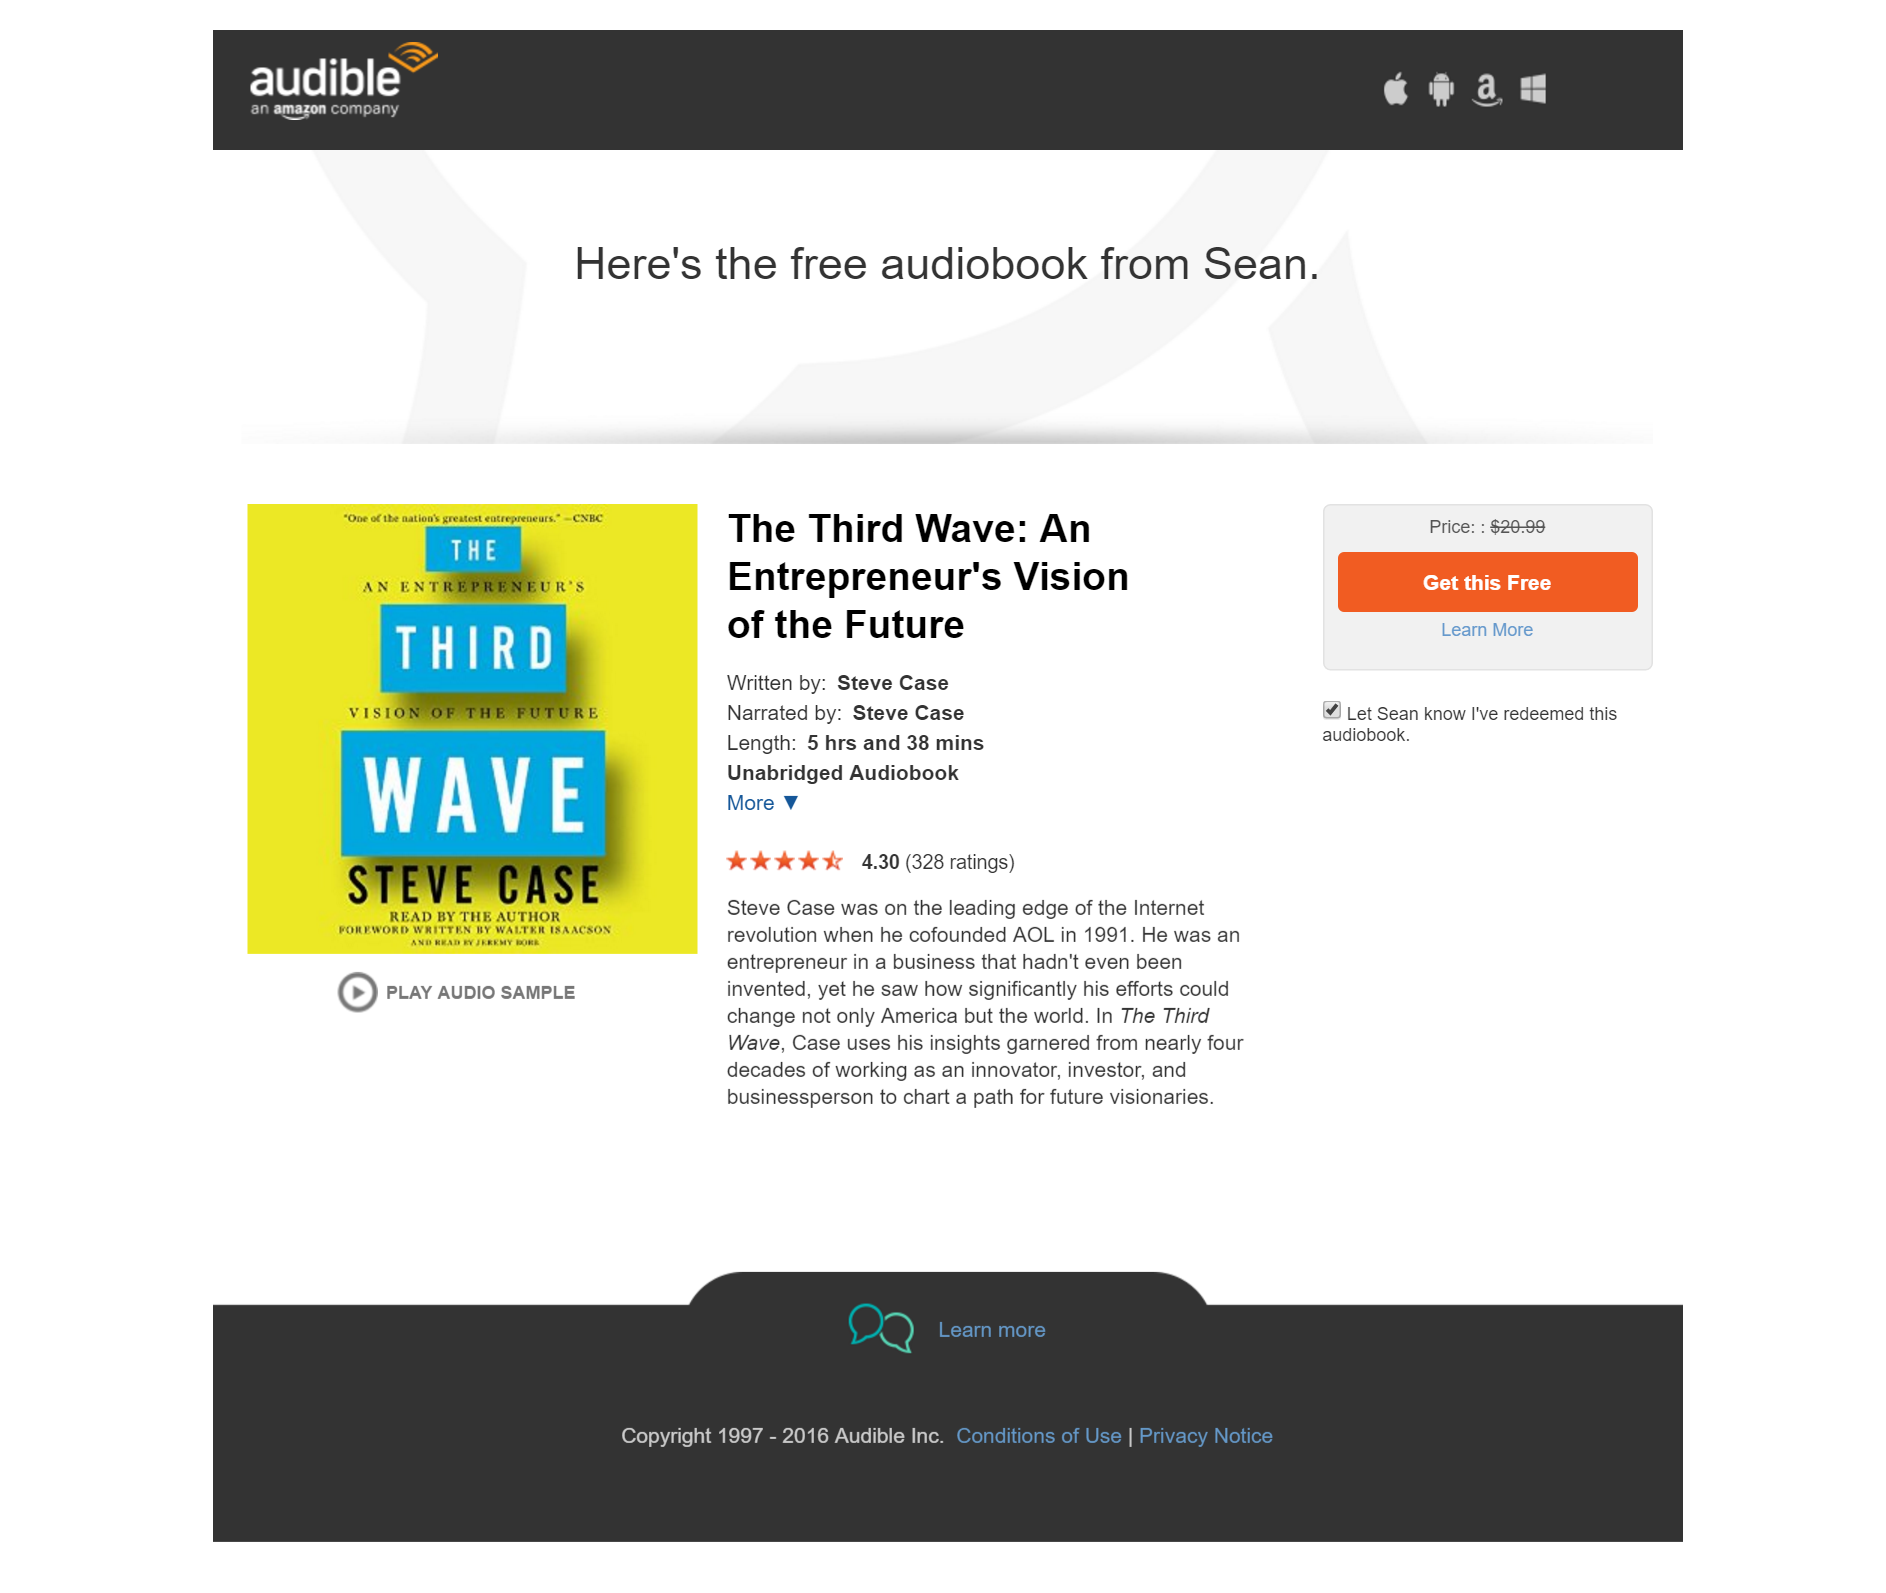 Free Audio Book from Amazon: